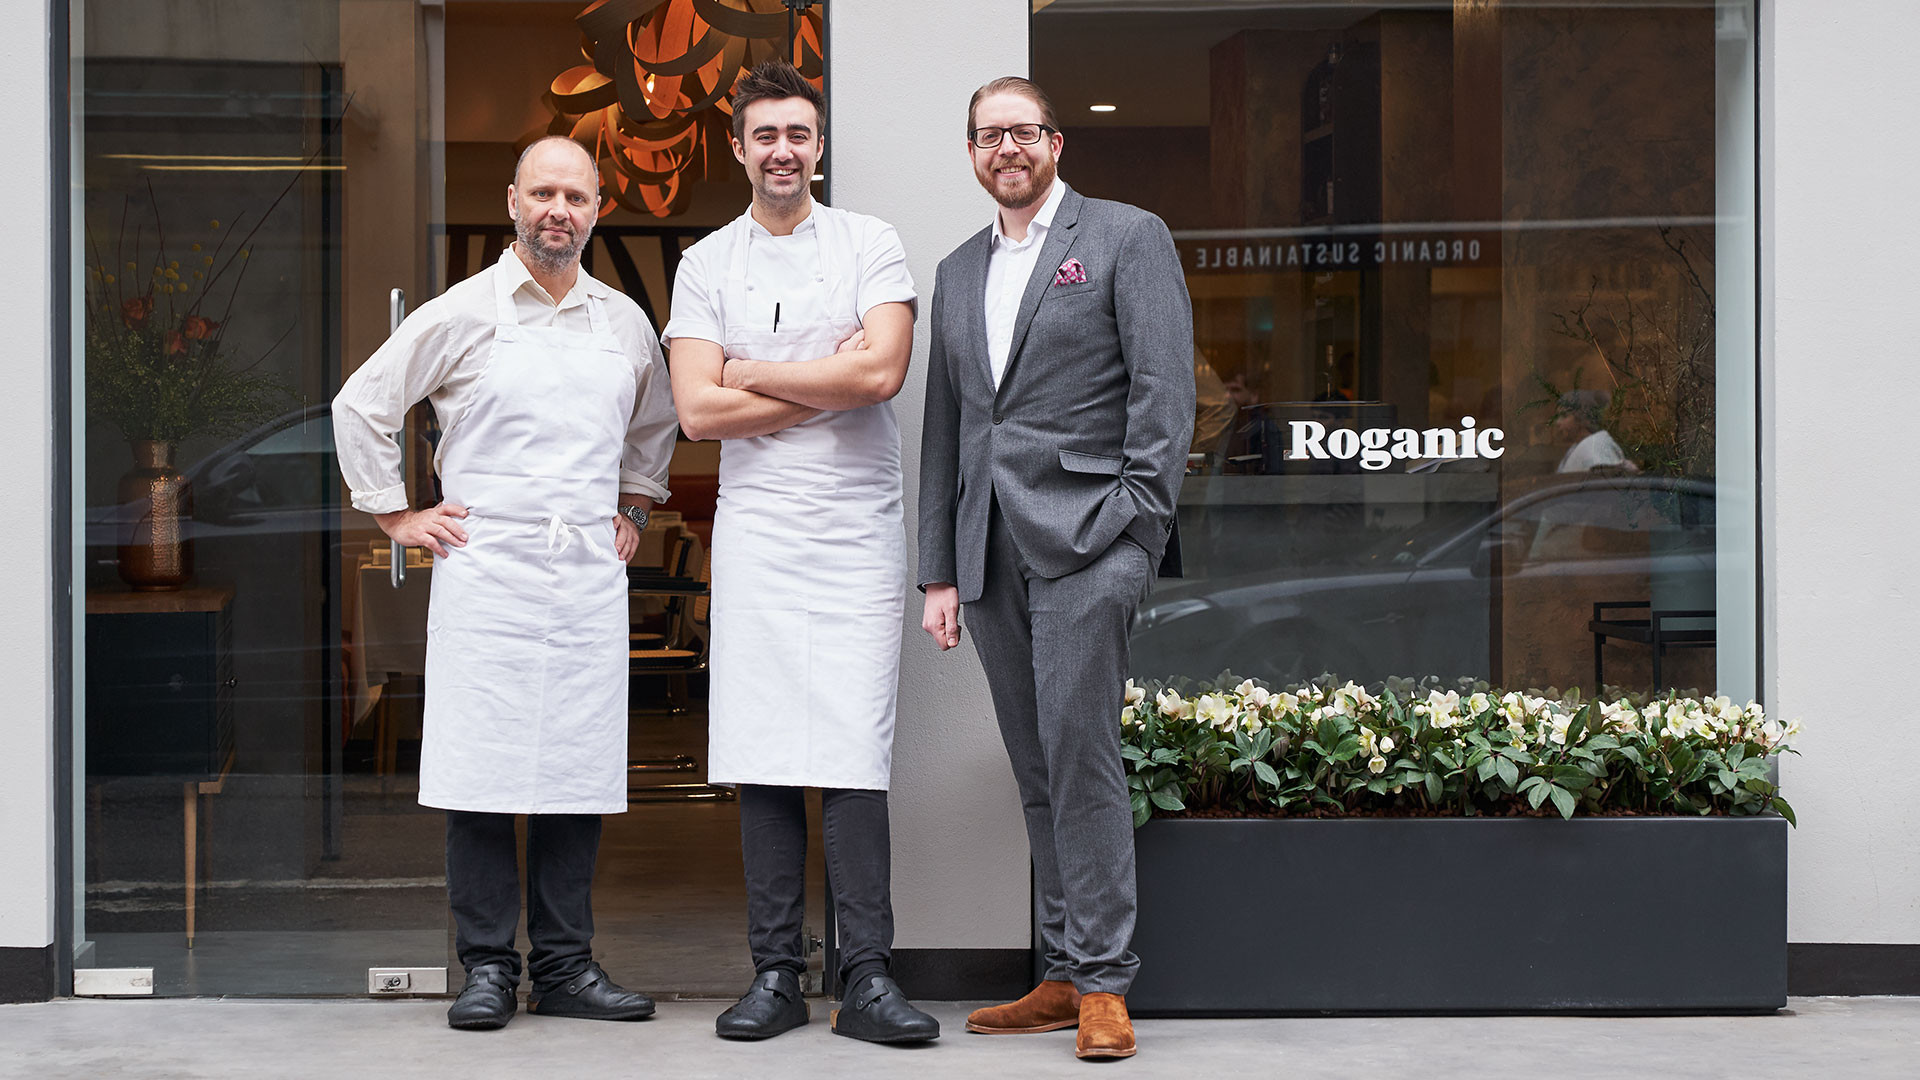 Simon Rogan with Roganic's head chef Oliver Marlow and general manager James Foster